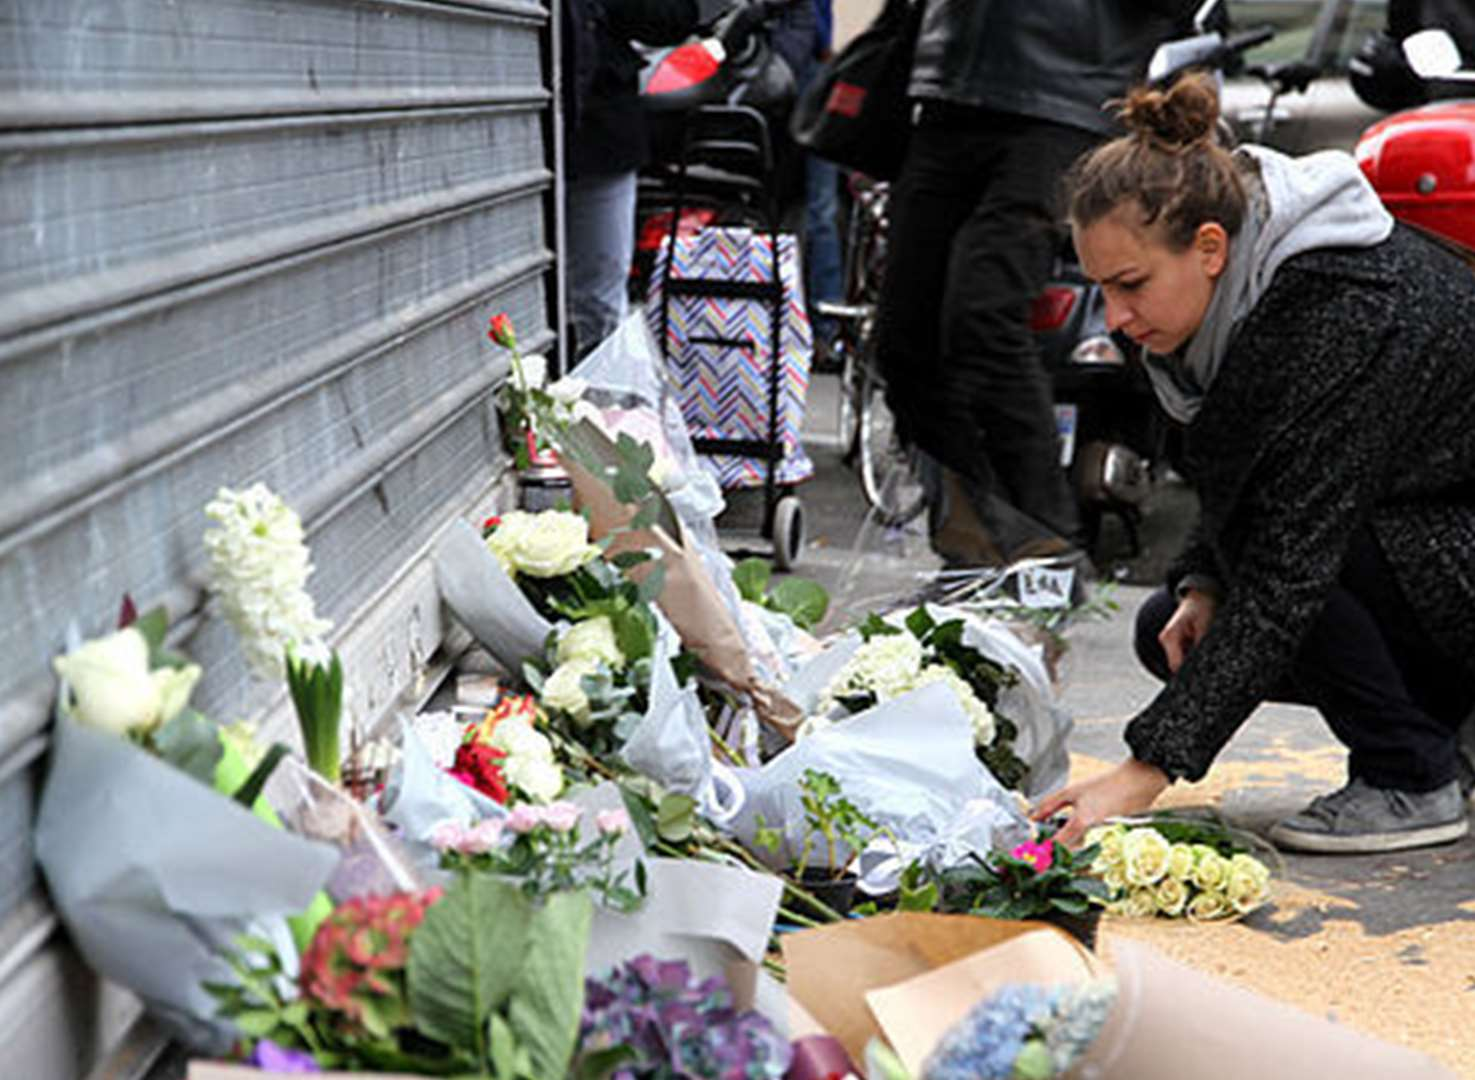 School cancels Paris trip amid terror concerns